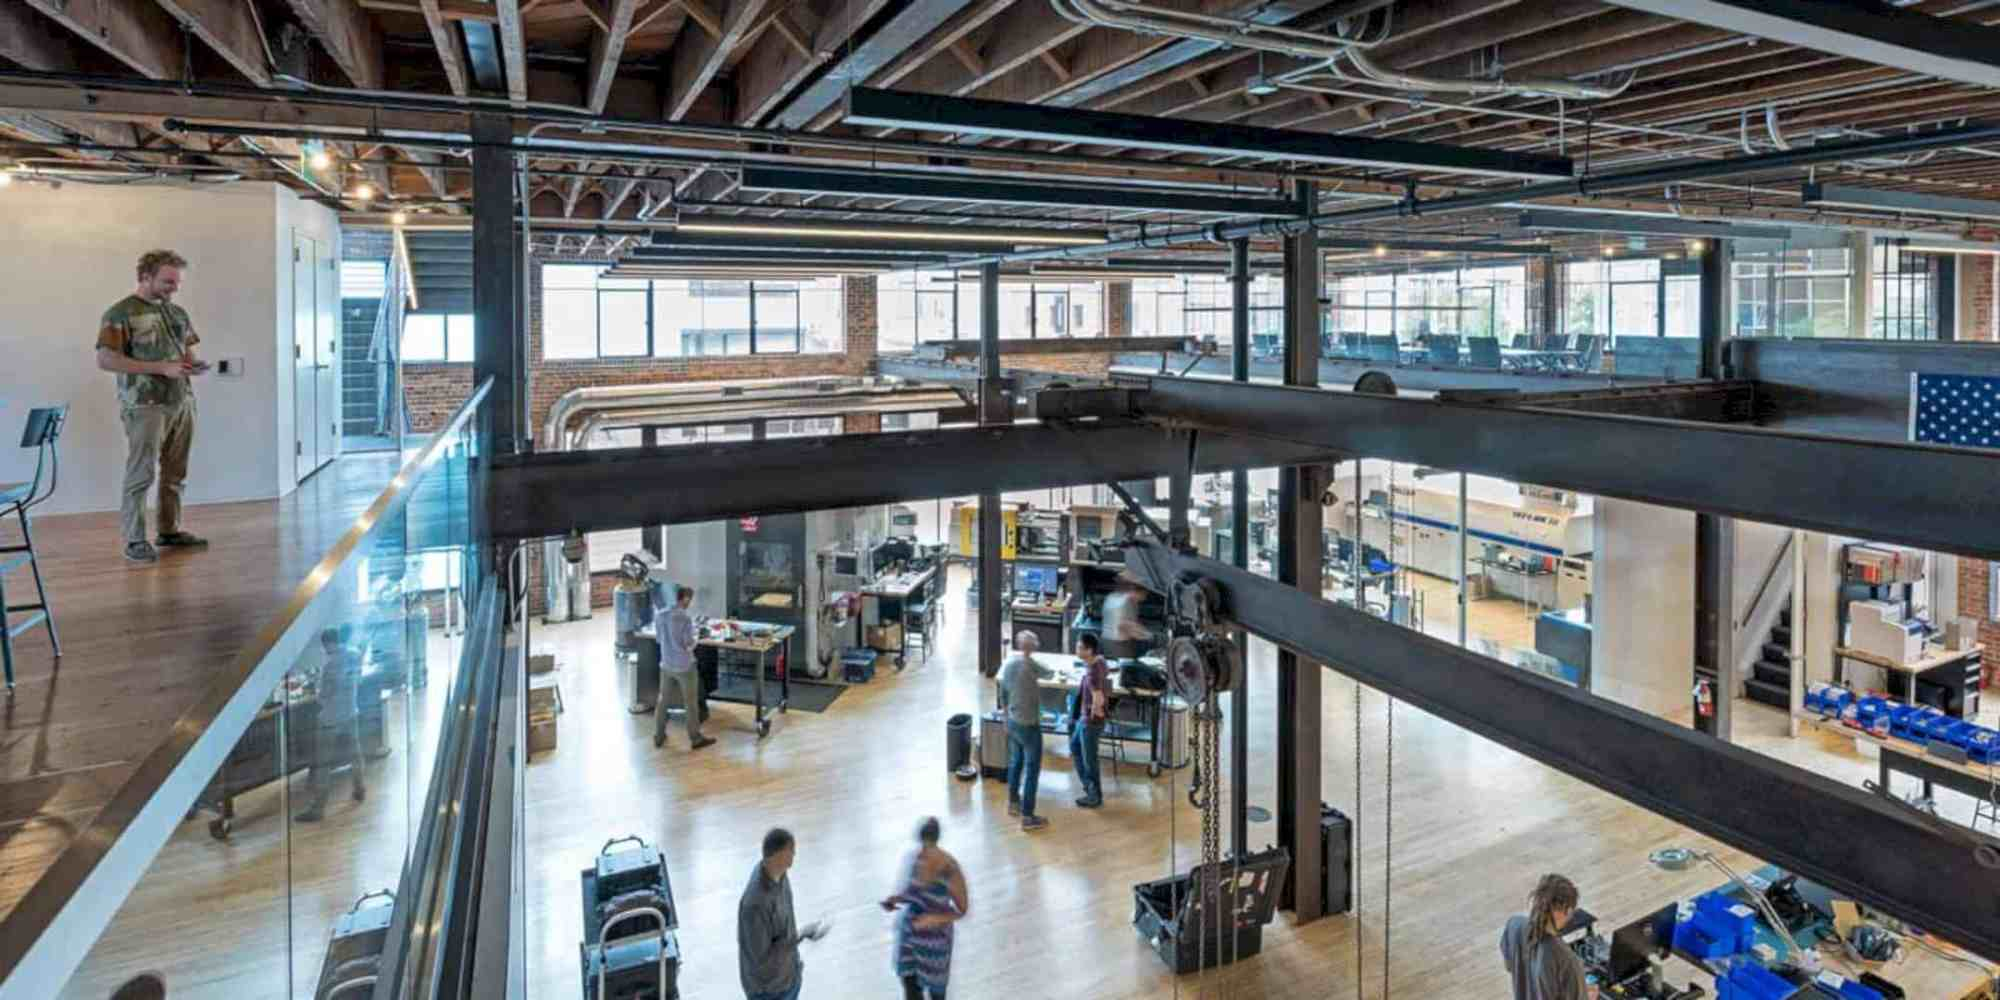 Buzzell Building: Modern Interior of Prototyping Studio with Two-Story Mezzanine Structure